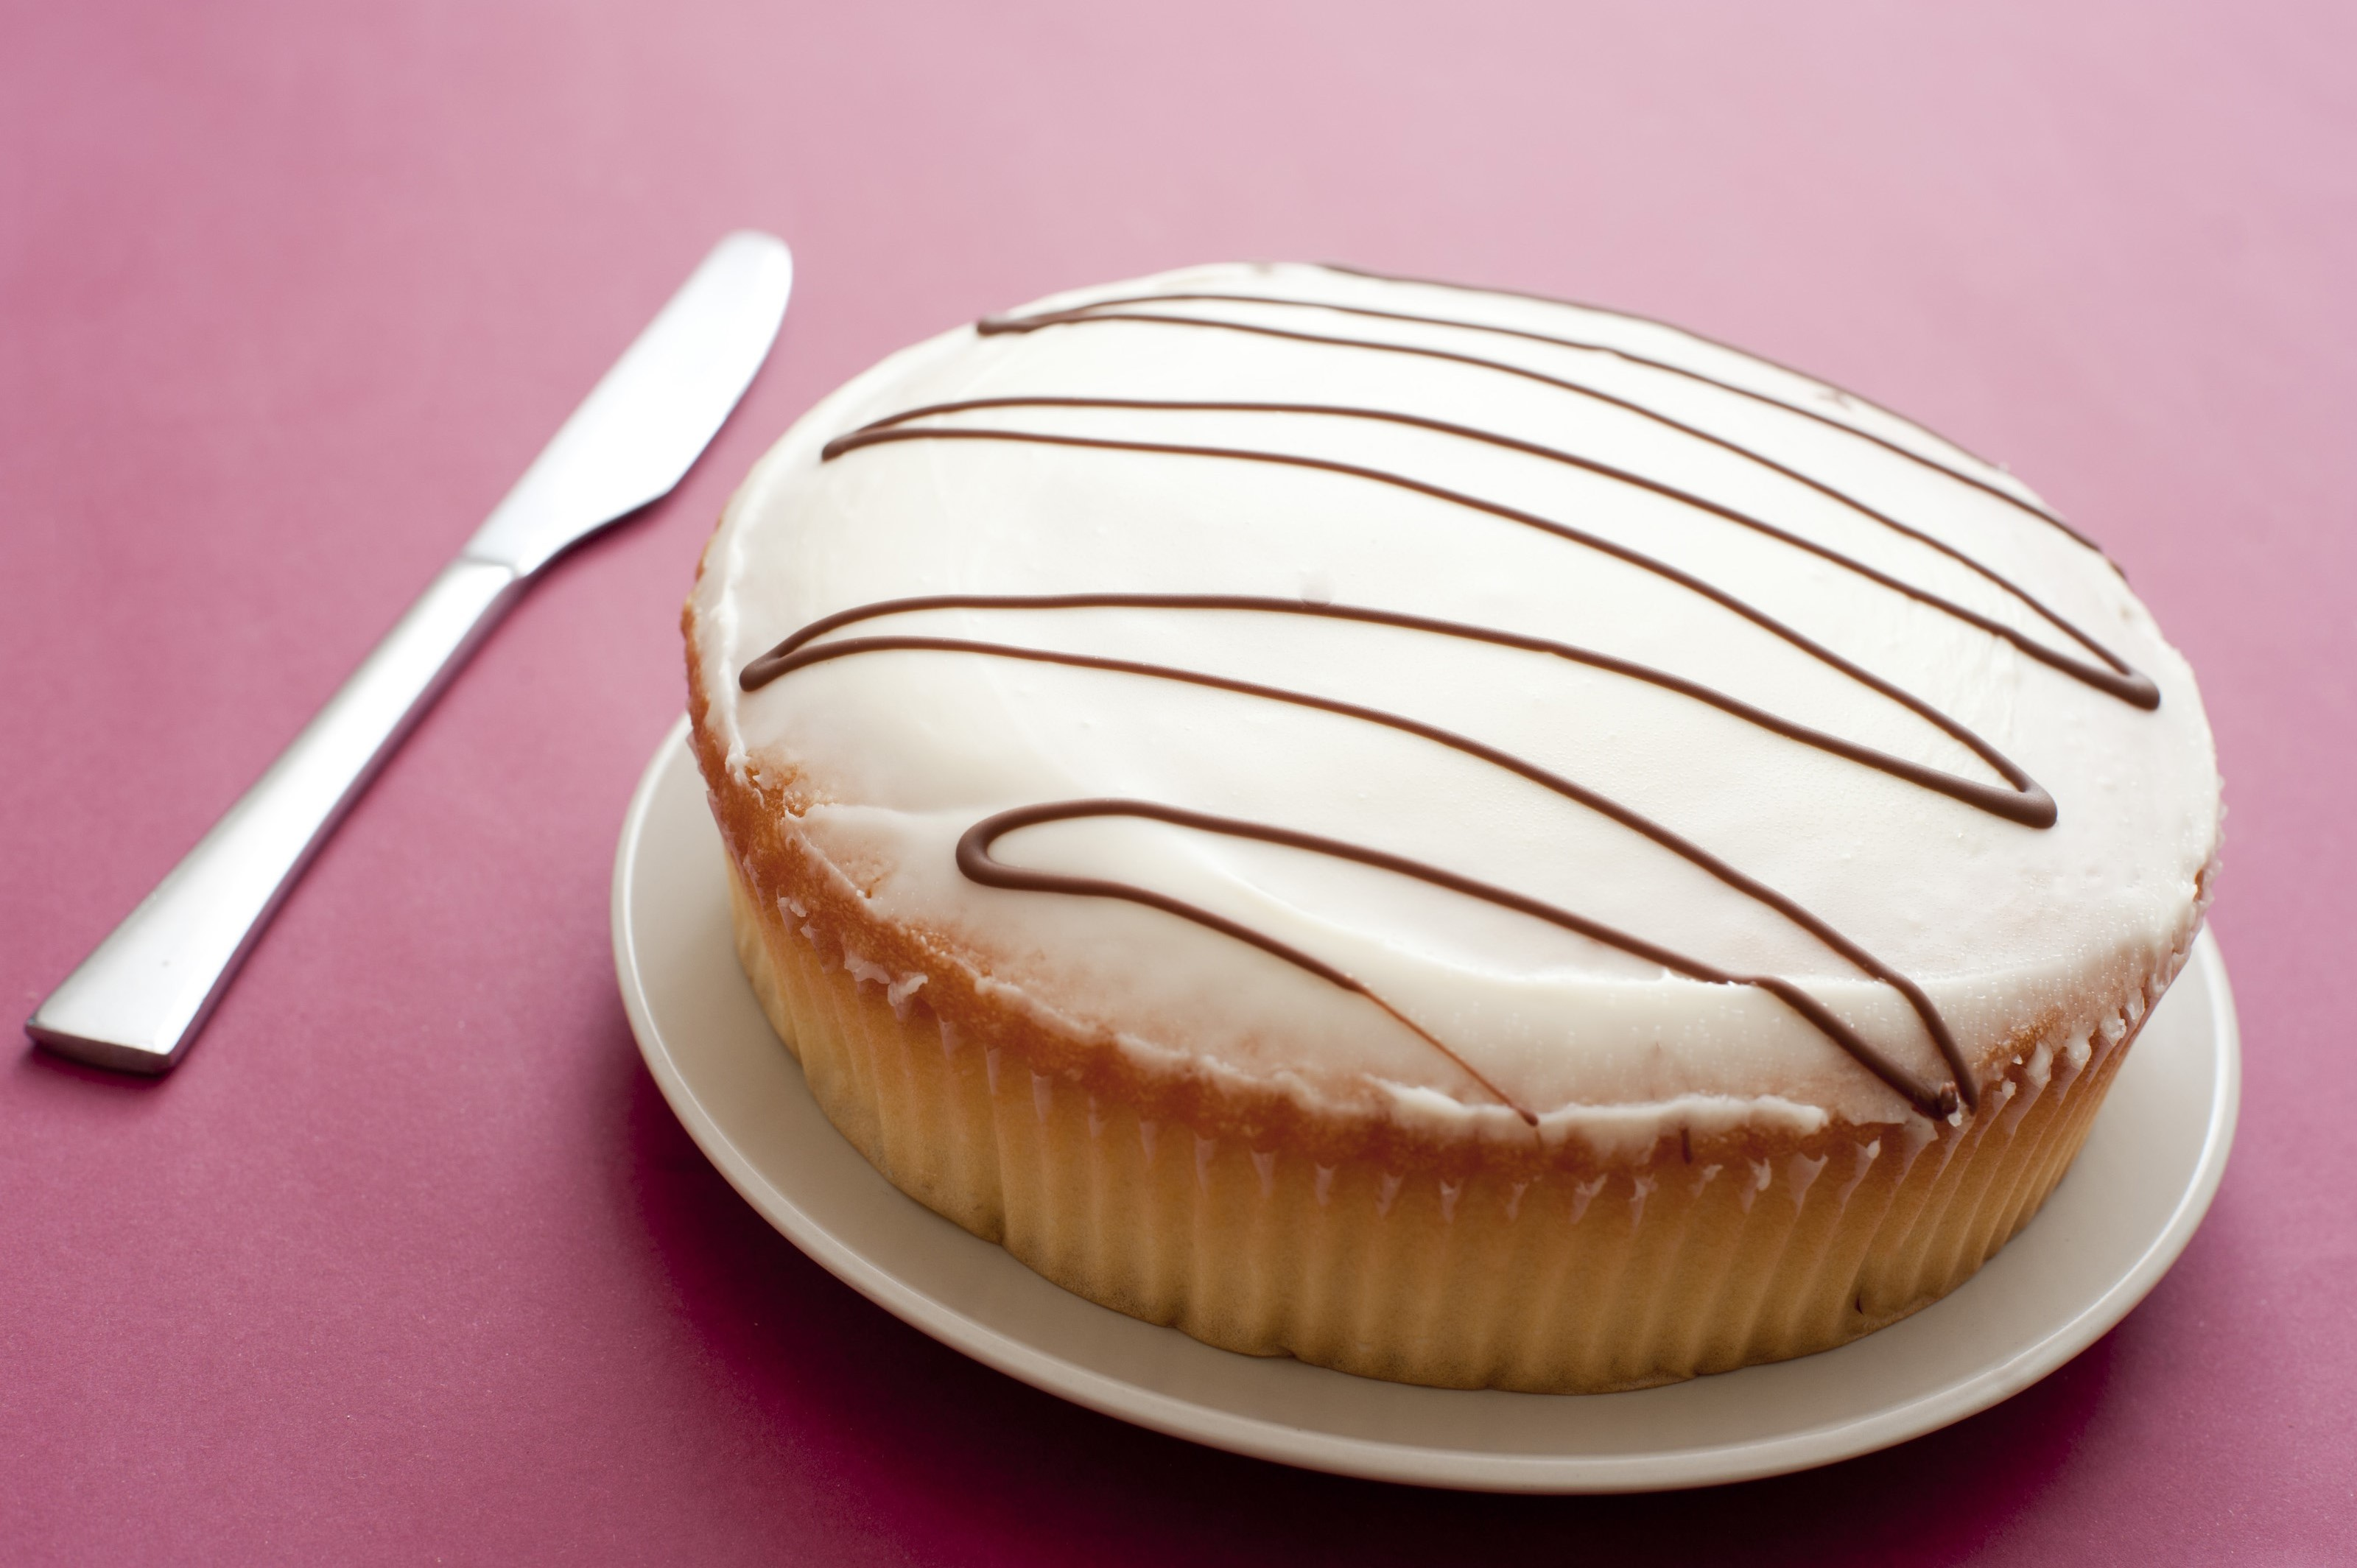 & Free image of Large Iced Cup Cake on Plate with Knife